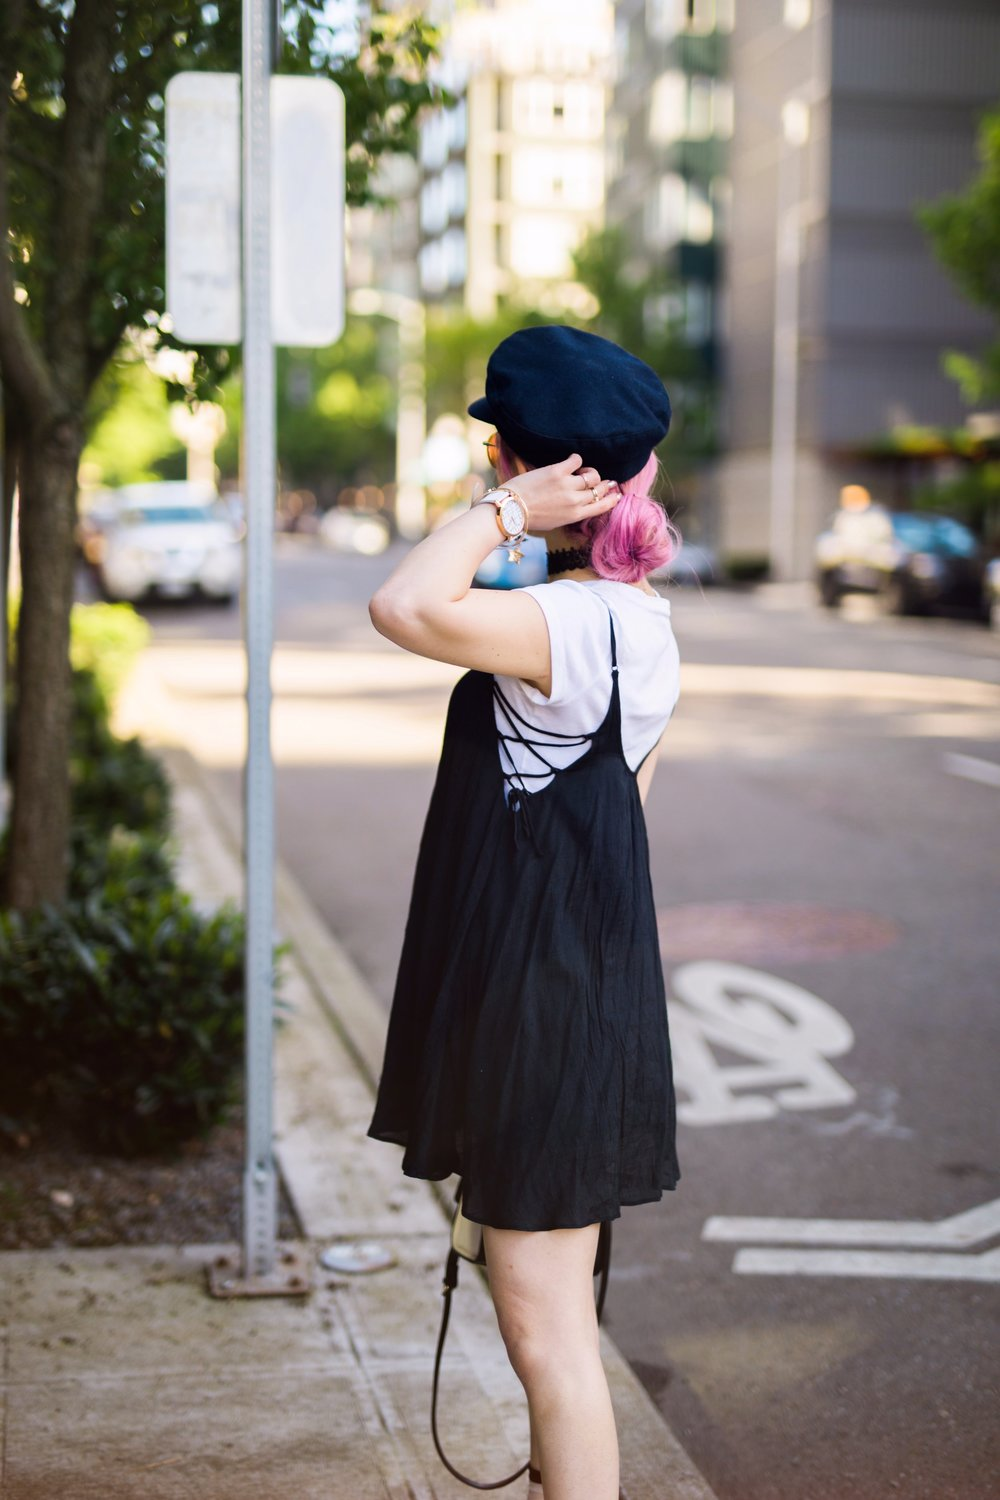 Aritzia News Boy Cap_Polette Retro Round Sunglasses_Mango Moon Star Earrings_Shopdixi Lace Choker_Forever 21 White Tee_Urban Outfitters Little Black Dress_Zara Bag_Sheer ankle Socks_ASOS Glitter Block heels Shoes_Aikas Love Closet_Seattle Fashion Blogger_Japanese_Pink hair 10